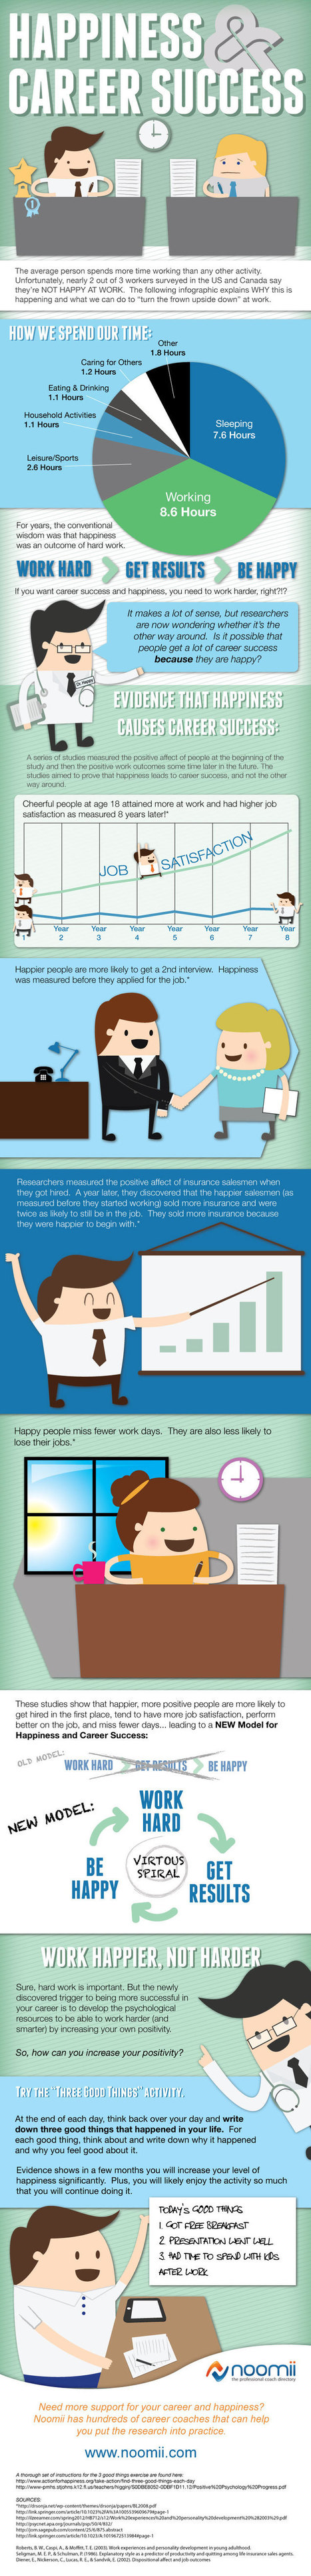 Study Shows To Reach Success Work Happier Not Harder [Infographic] | Le Bonheur, ça se travaille | Scoop.it